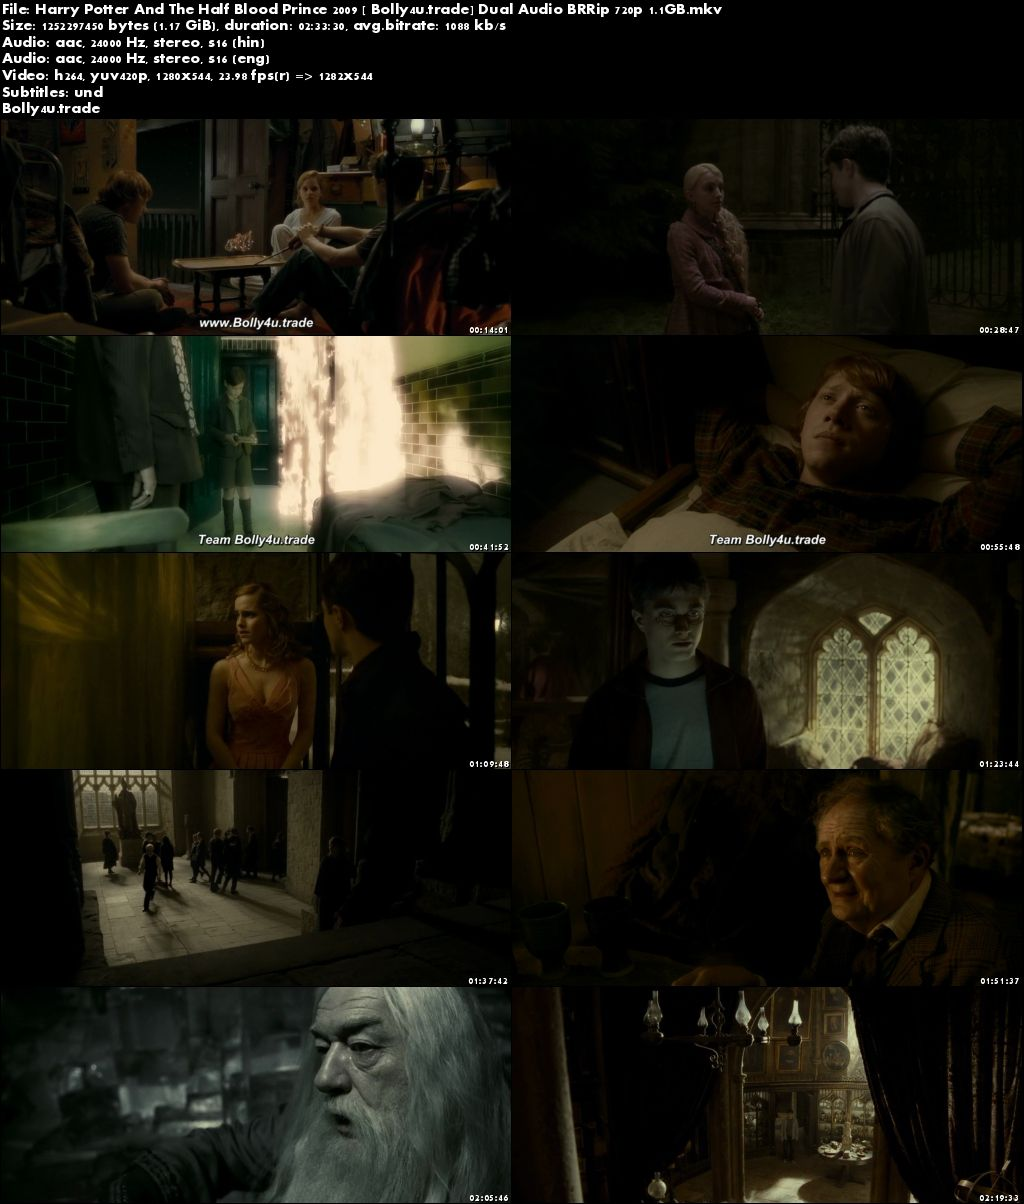 Harry Potter And The Half Blood Prince 2009 BRRip Hindi Dual Audio 720p Download